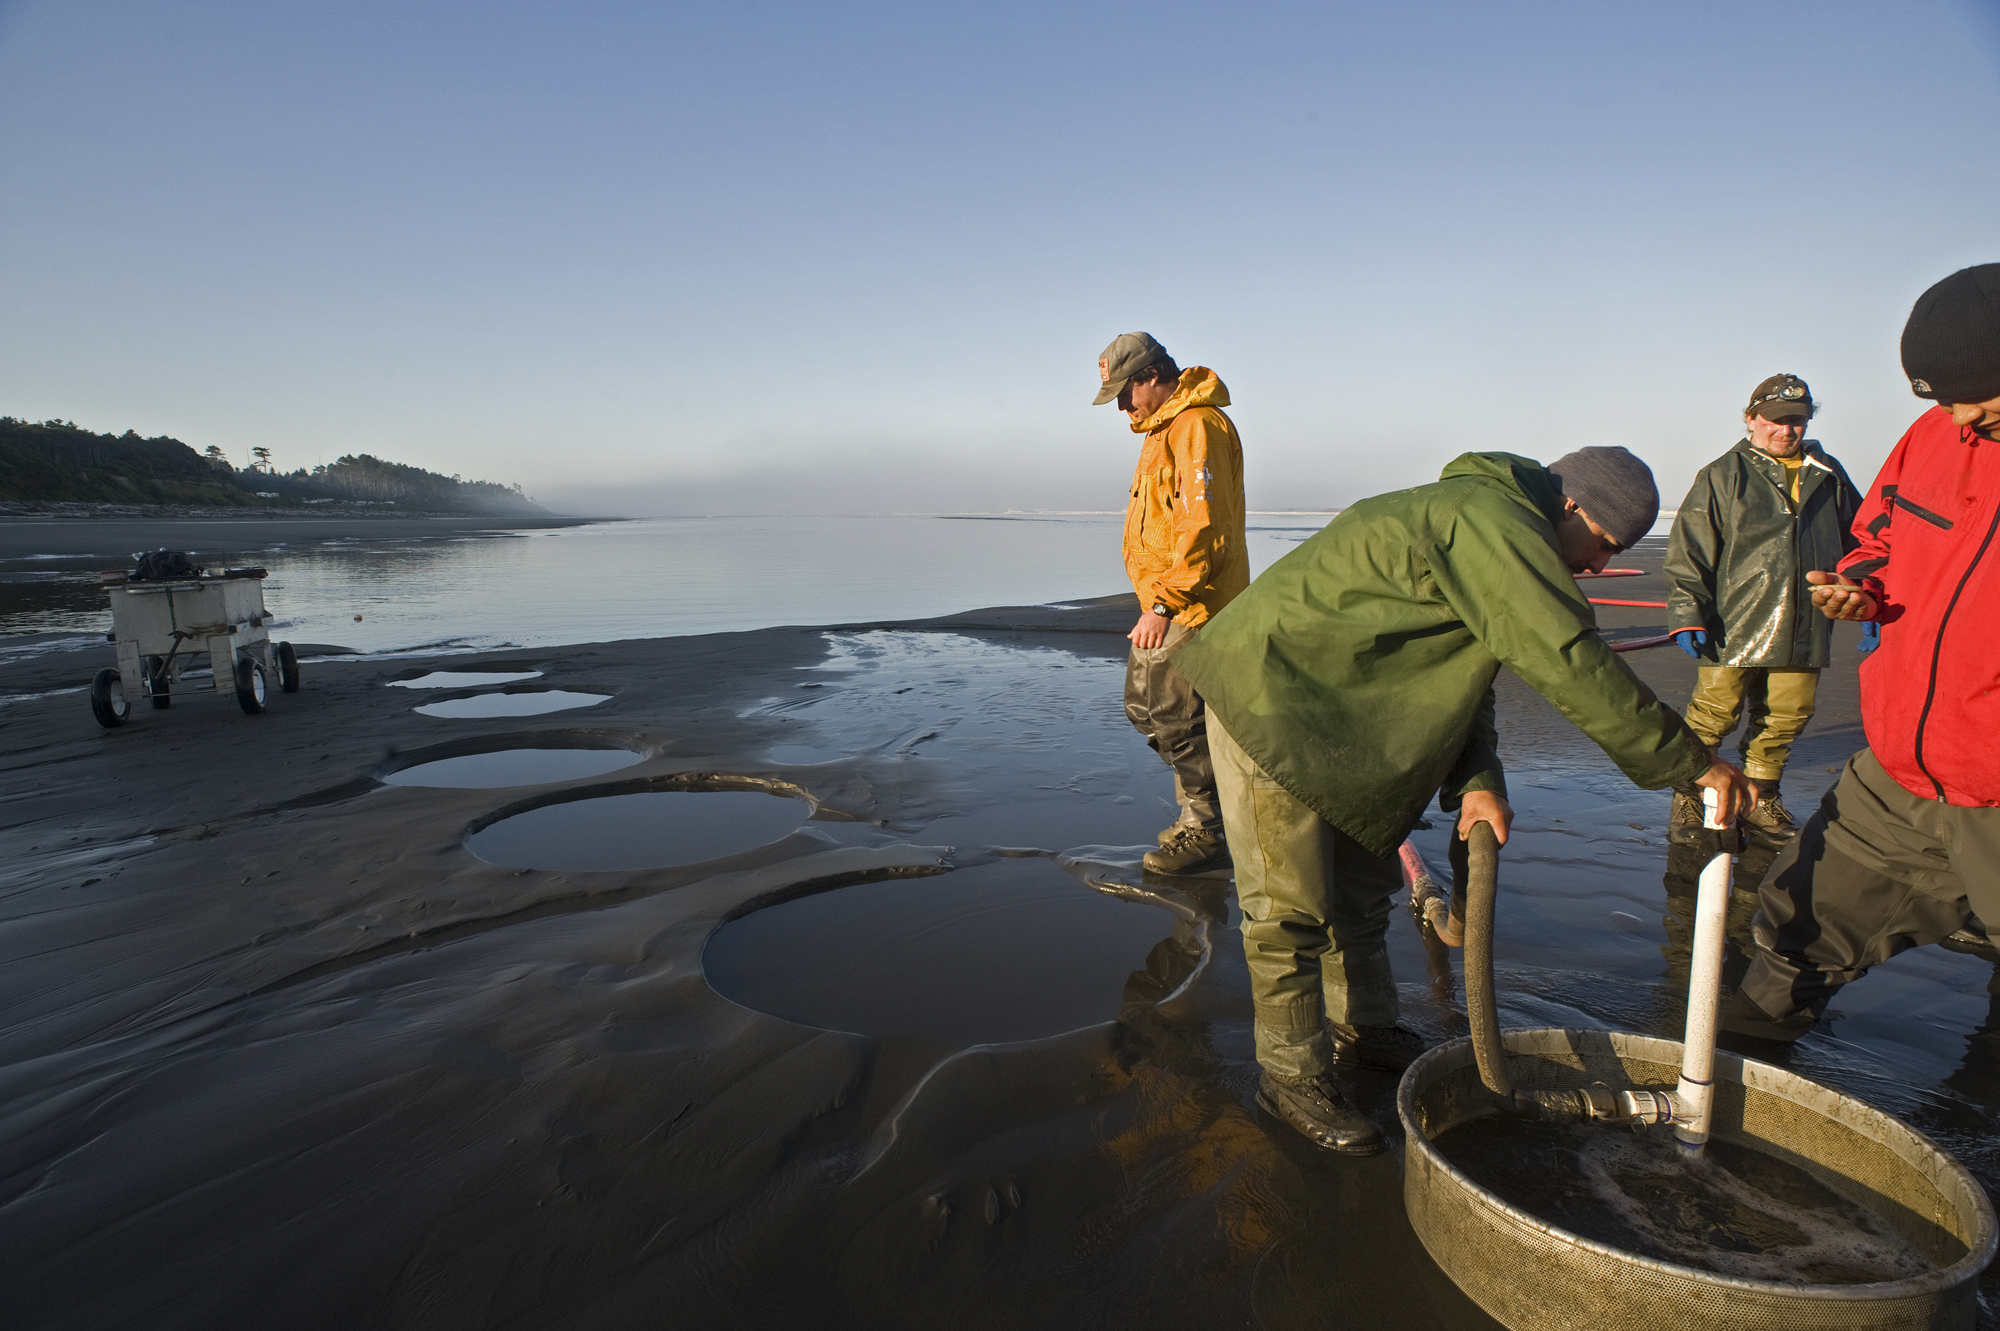 Razor clam digs scheduled following surveys